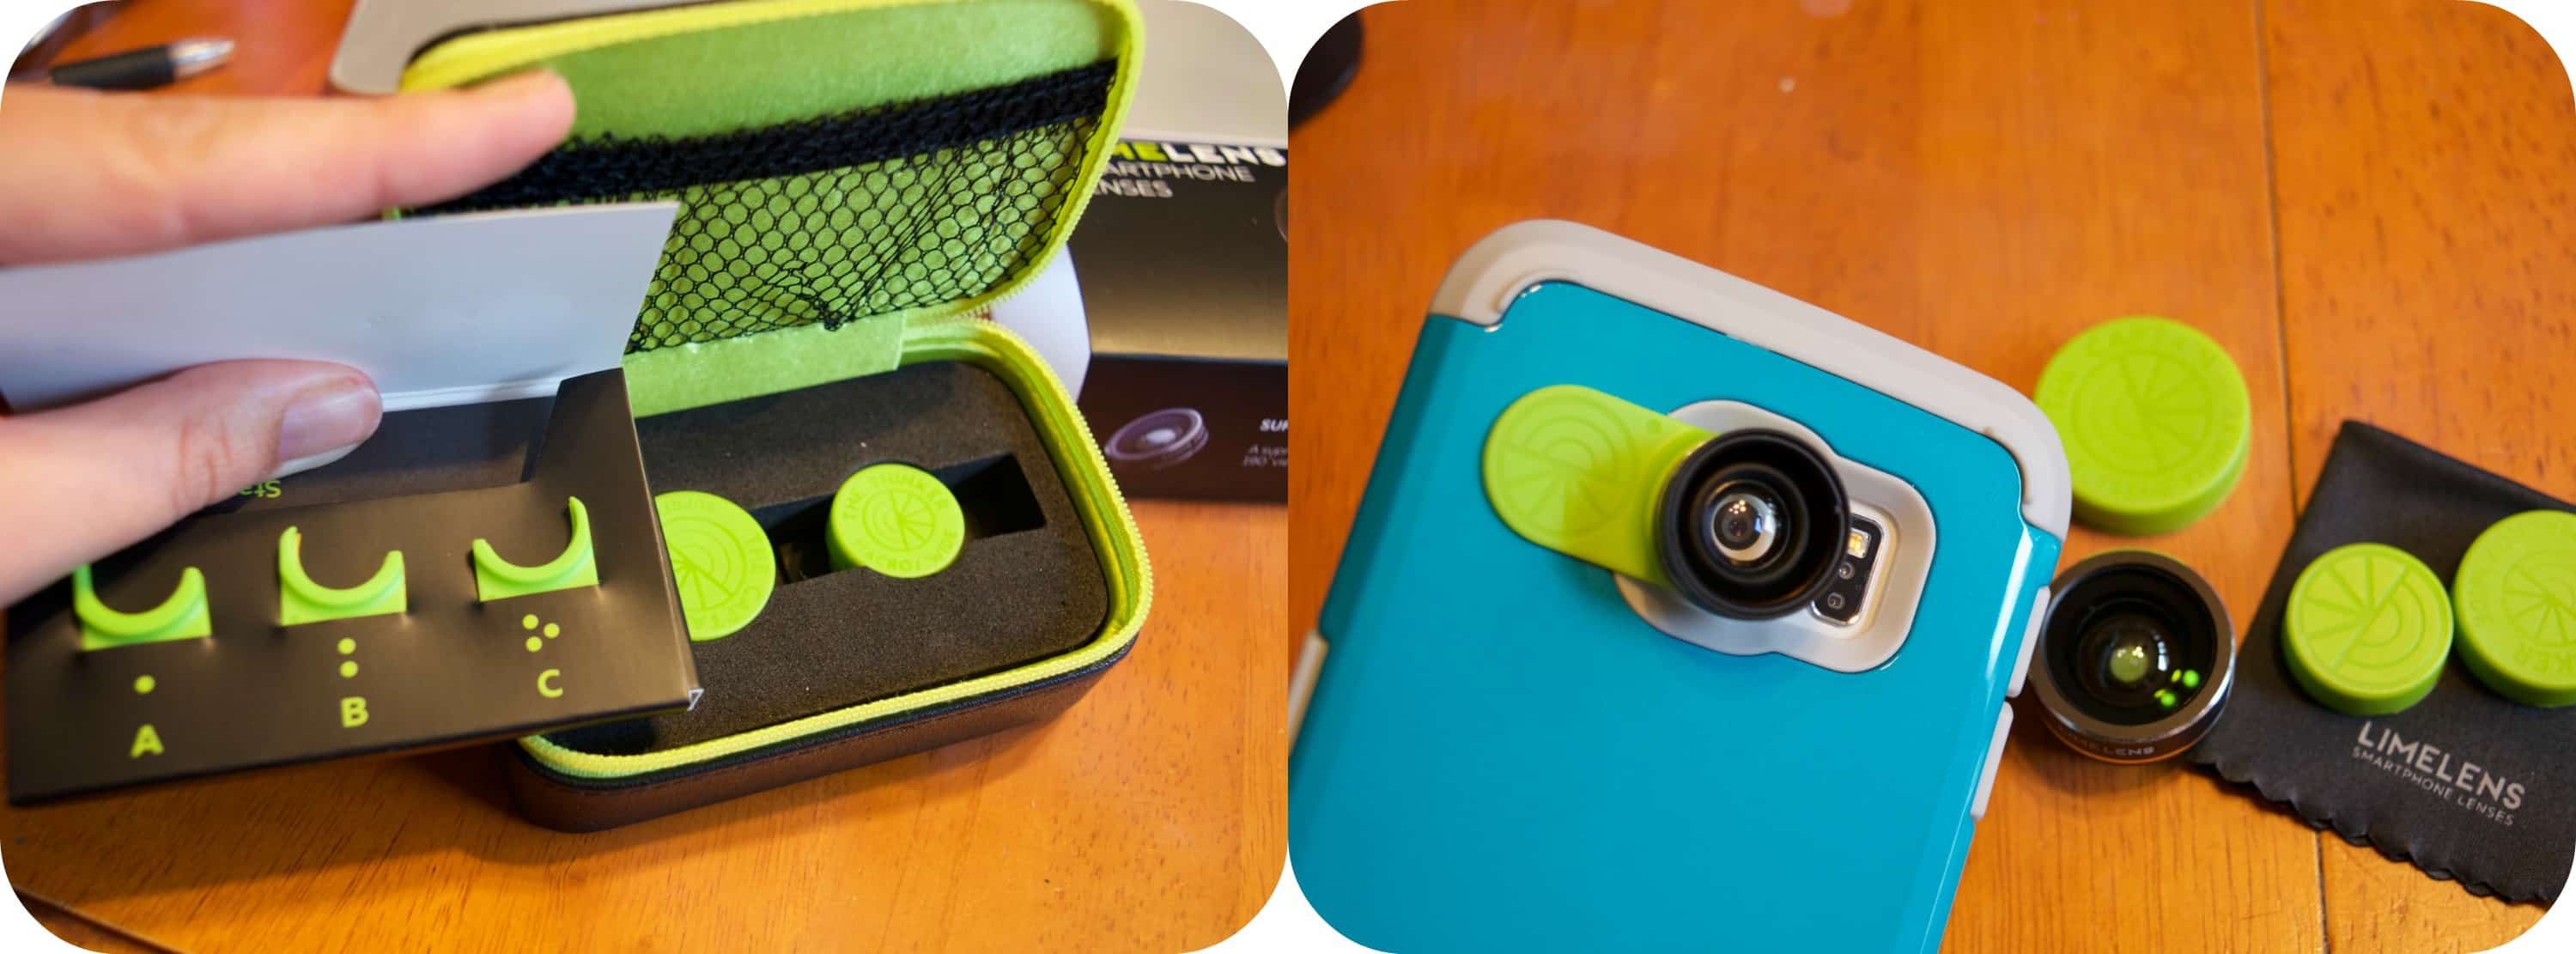 limelens smartphone camera lens photography